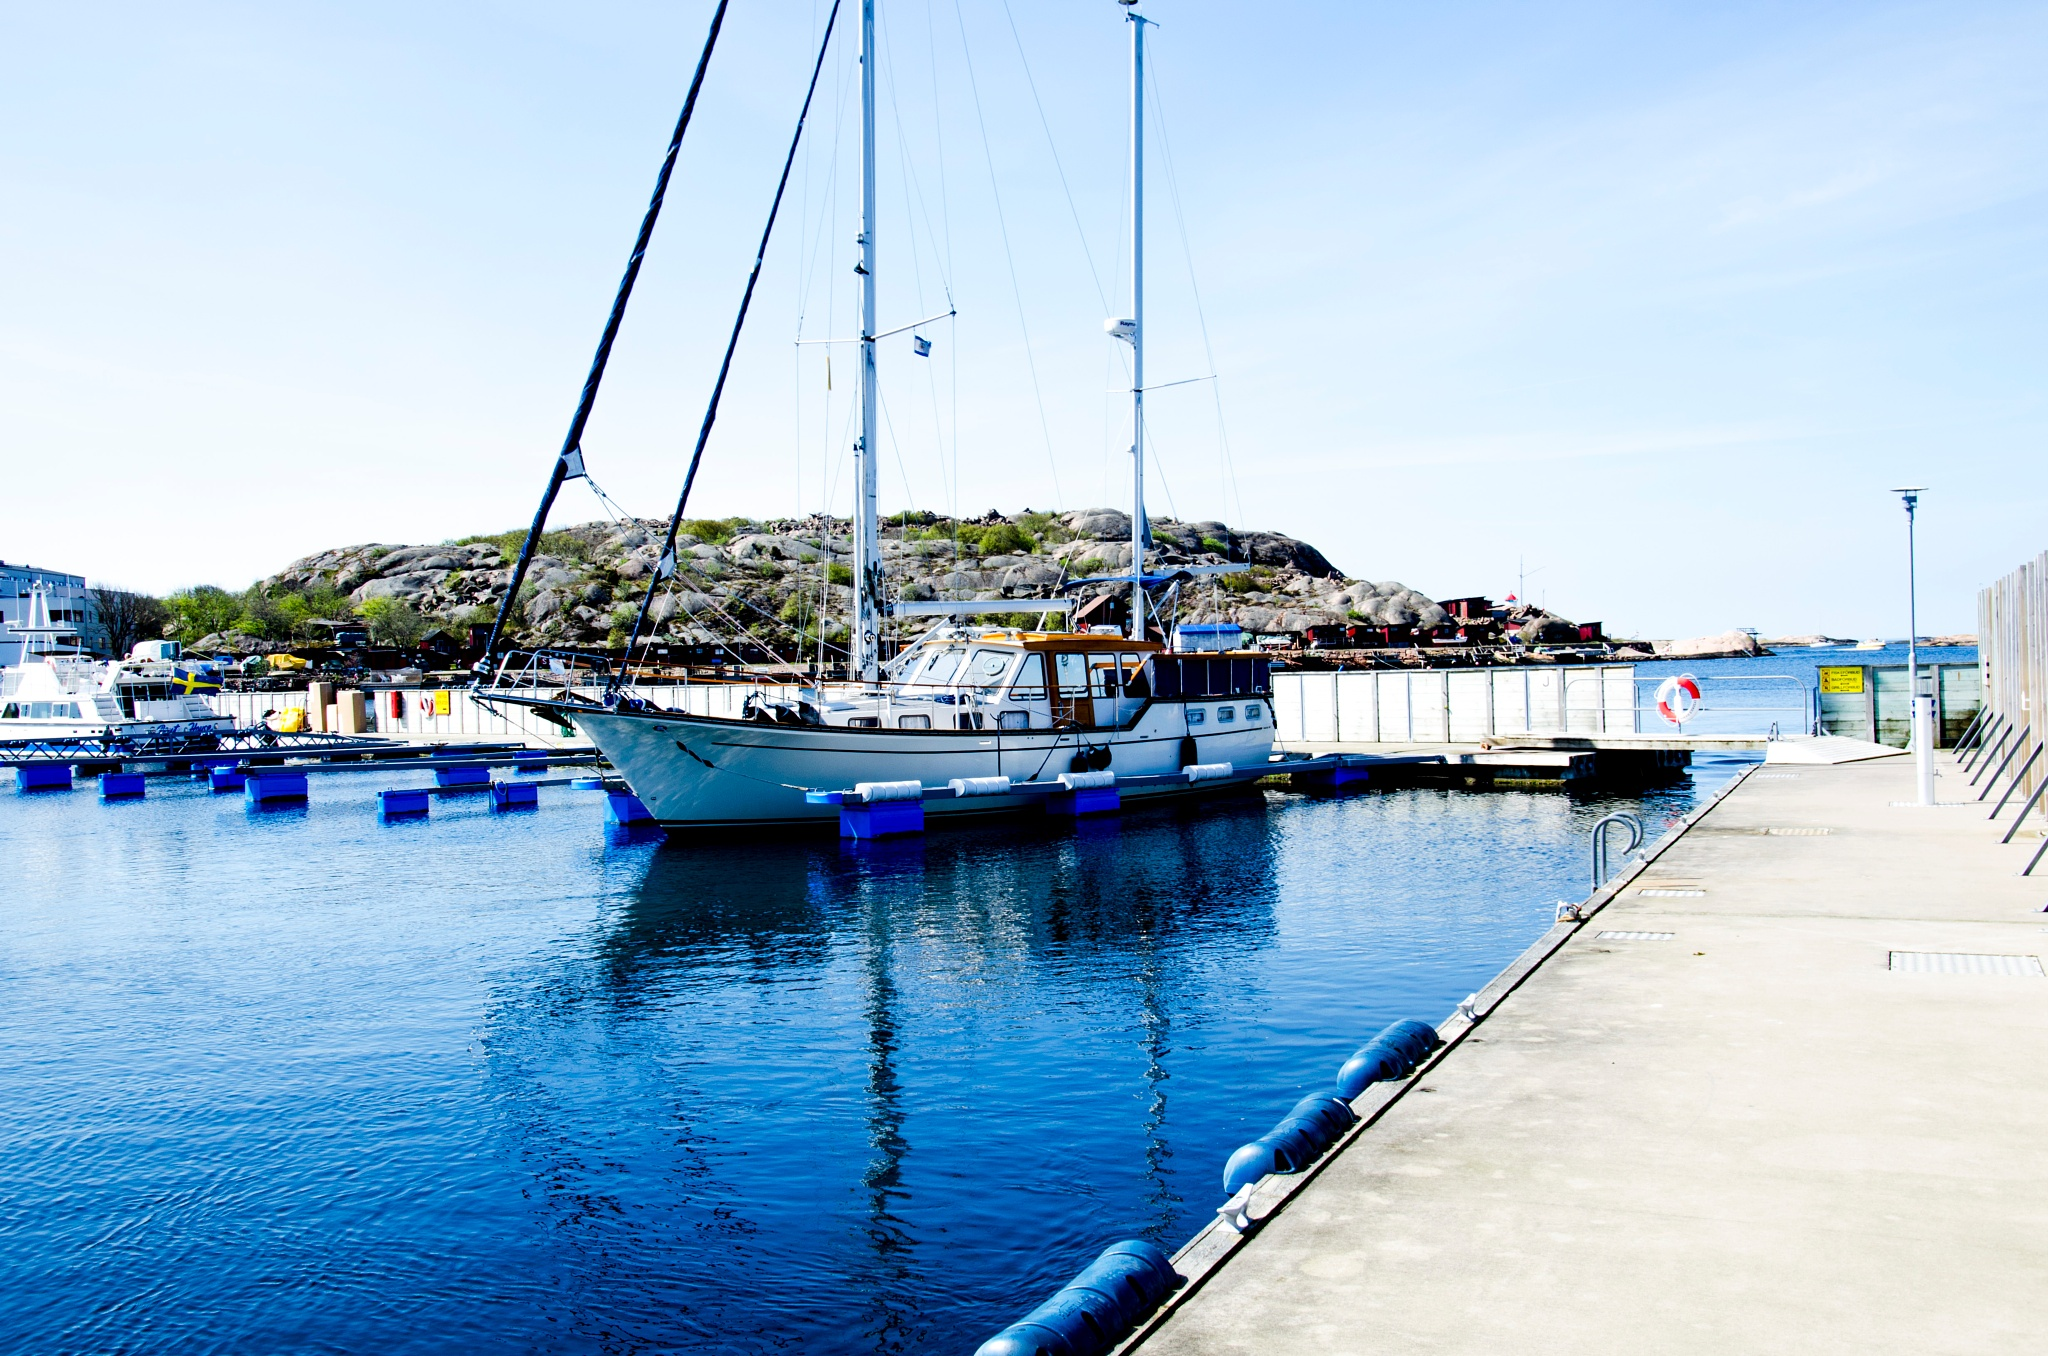 Motor sailboat at the dock by Johnny Lythell